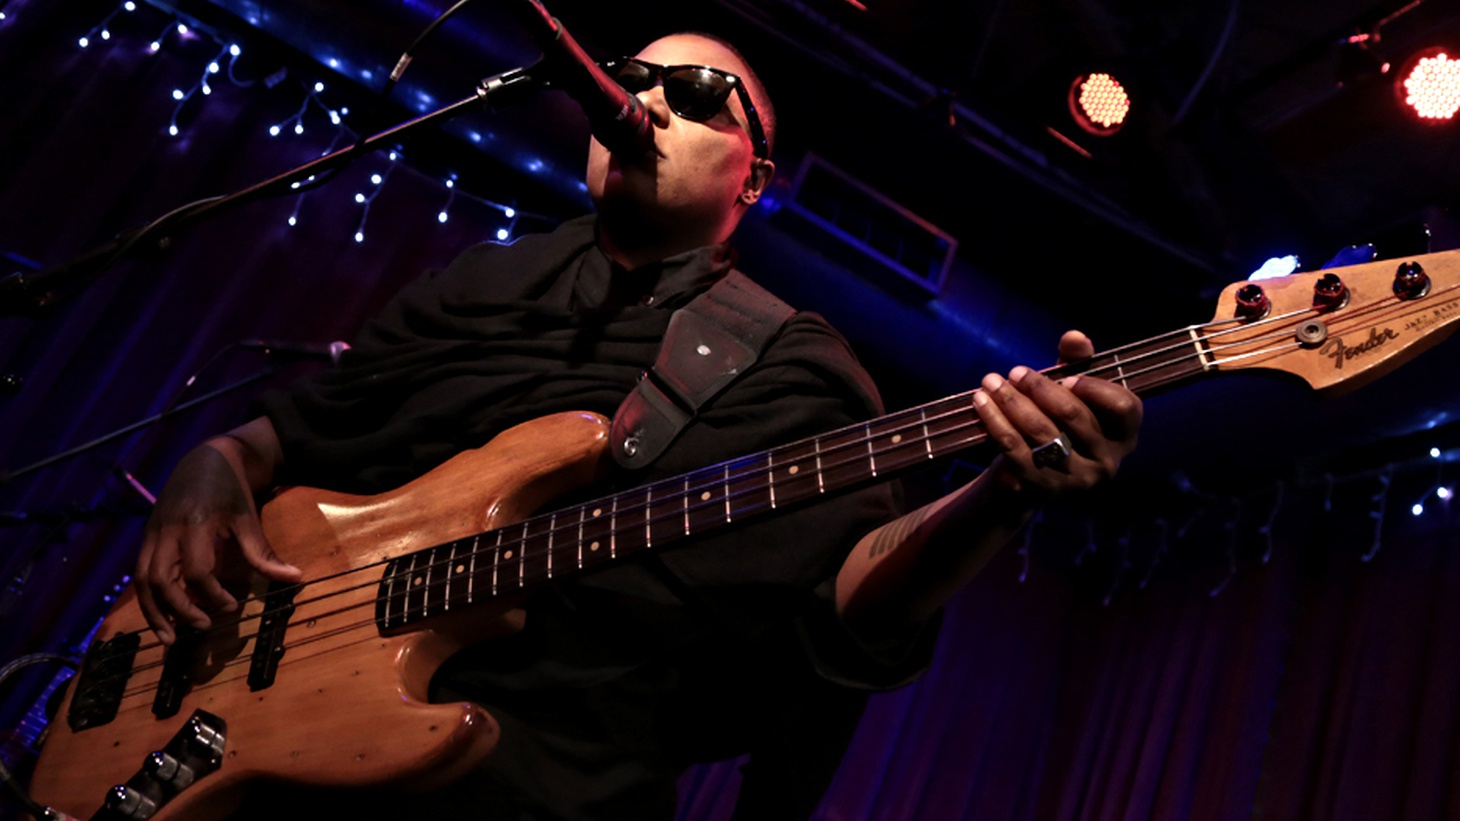 Extraordinary bassist and singer Meshell Ndegeocello graced the stage at Apogee Studio and delivered melodic and moody work from her album Comet, Come to Me, along with her classics.